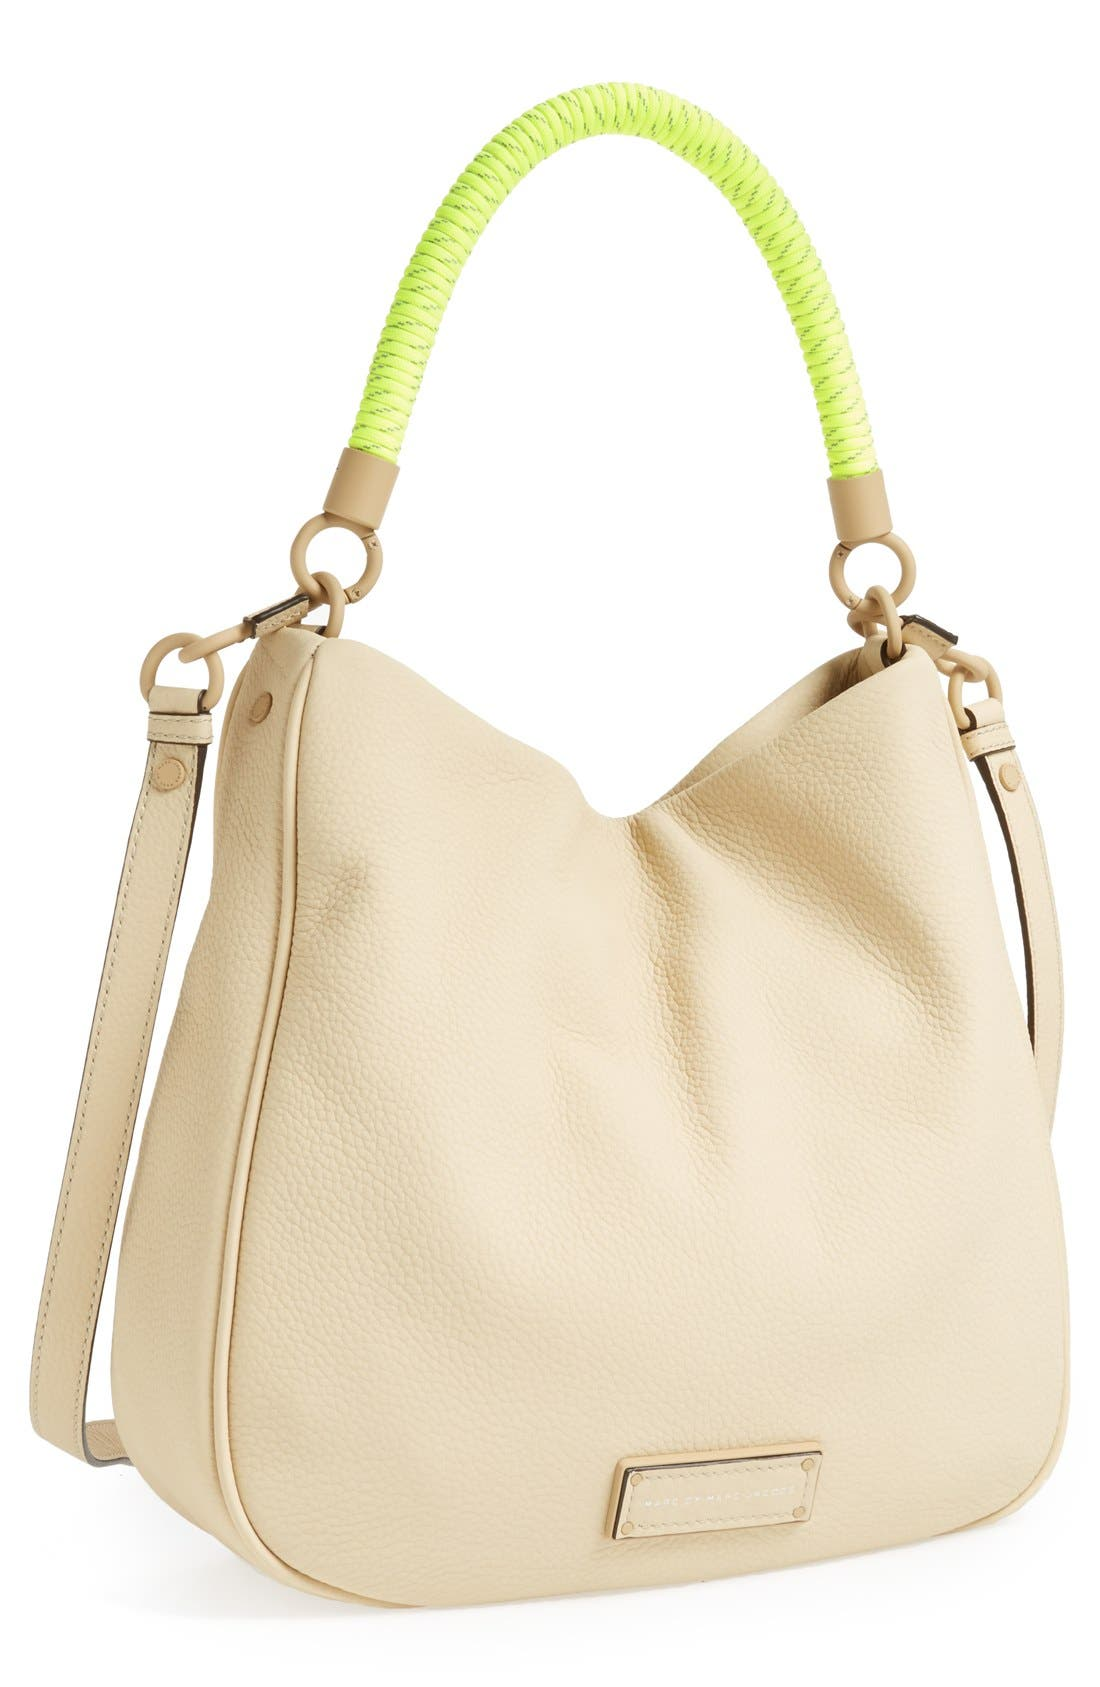 Alternate Image 1 Selected - MARC BY MARC JACOBS 'Too Hot to Handle' Leather Hobo